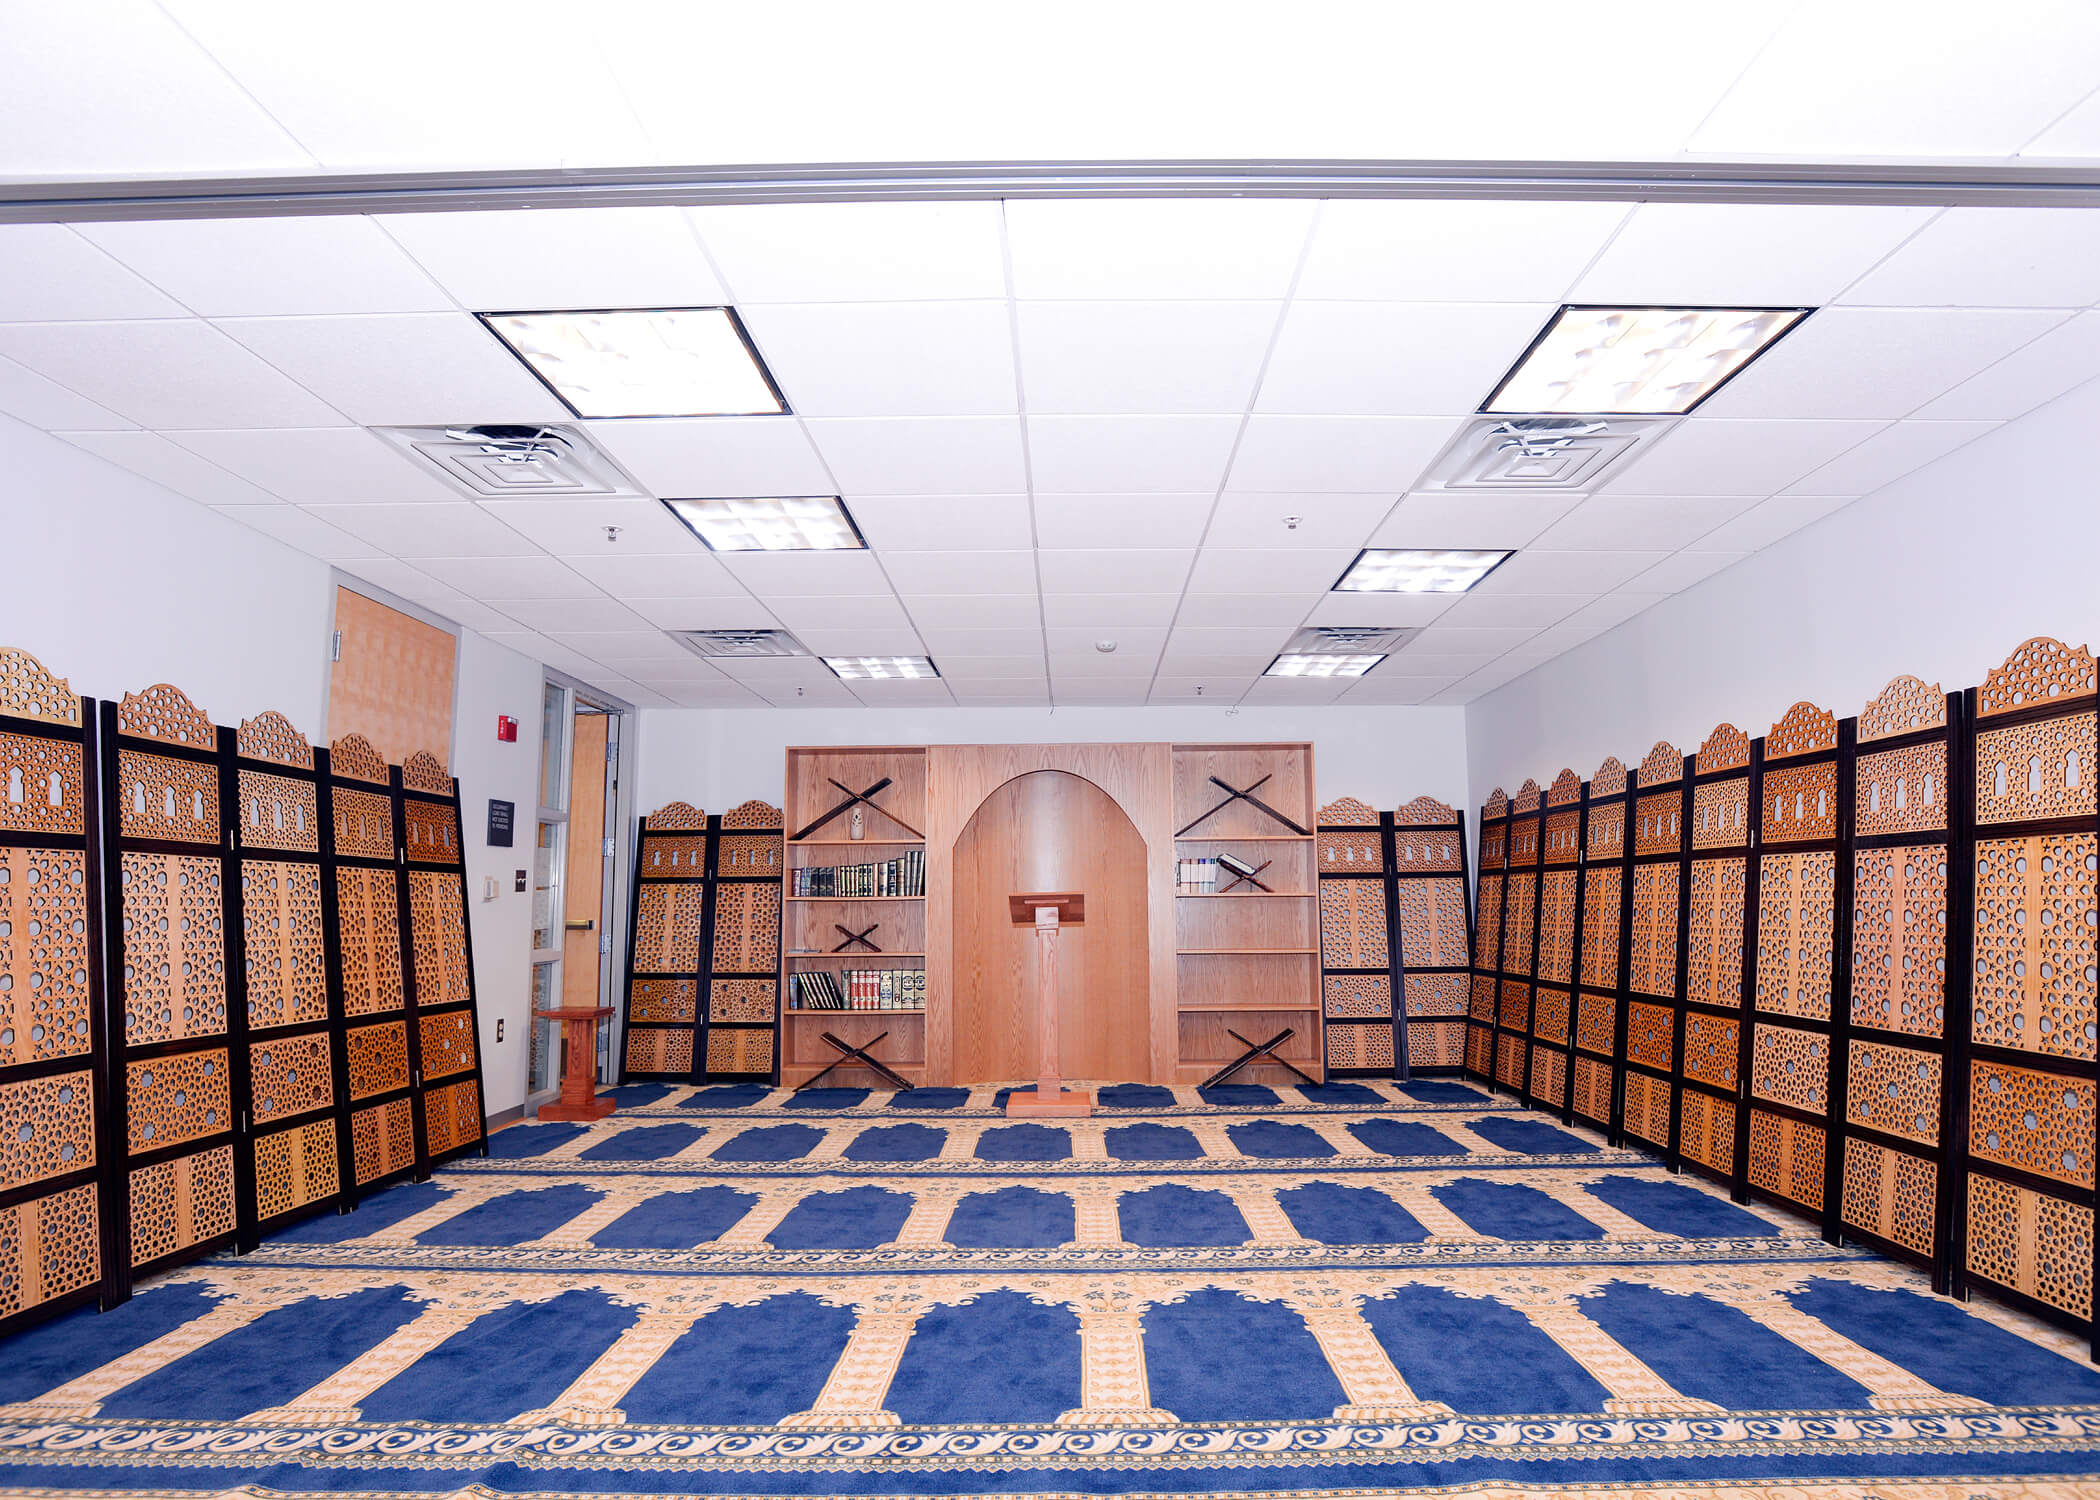 Image of prayer room for Islamic services